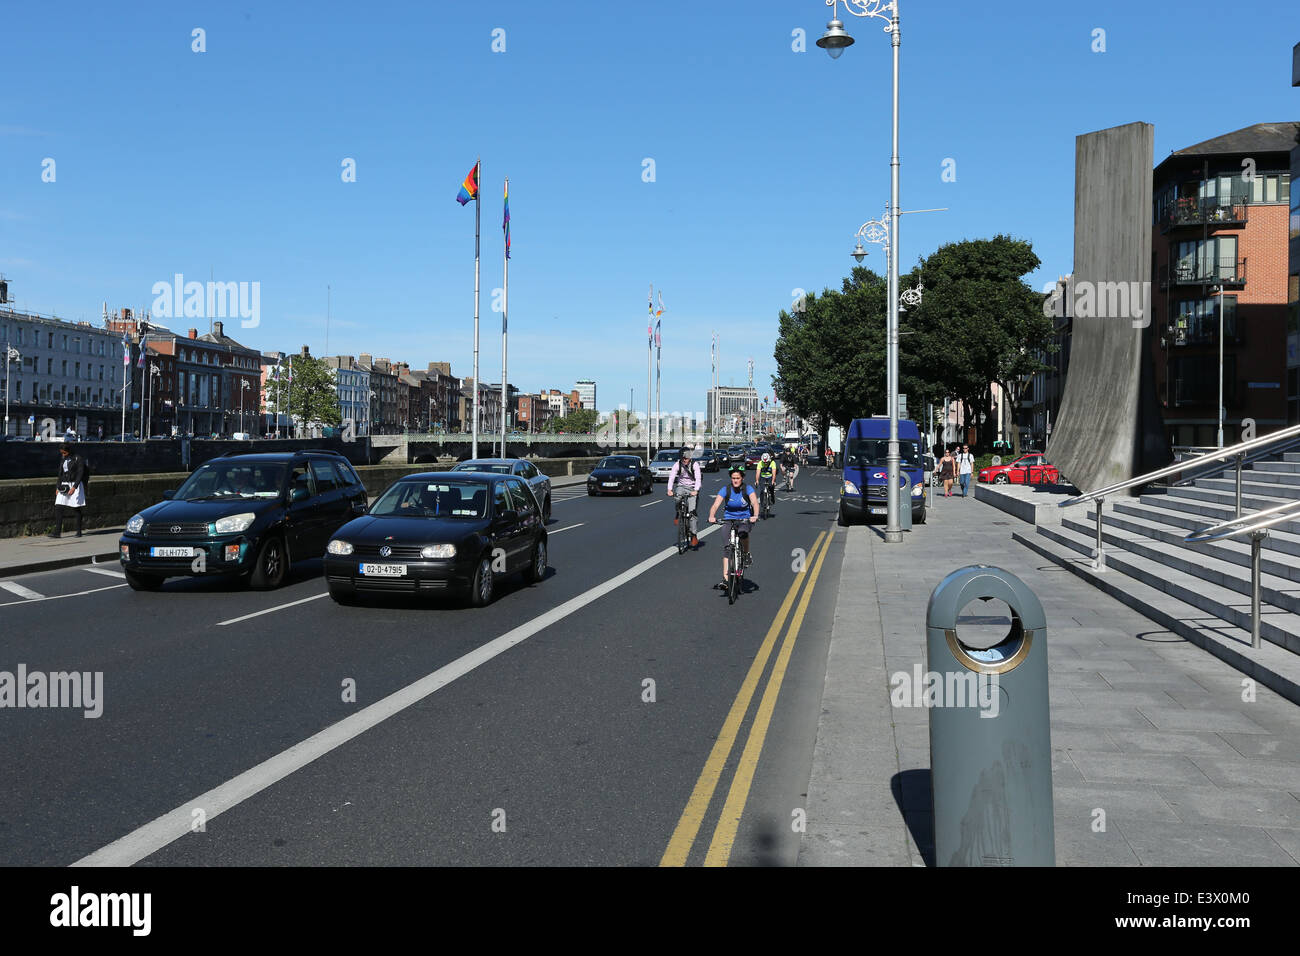 Traffic on a road at Wood Quay along the River Liffey in Dublin during a period of good weather - Stock Image